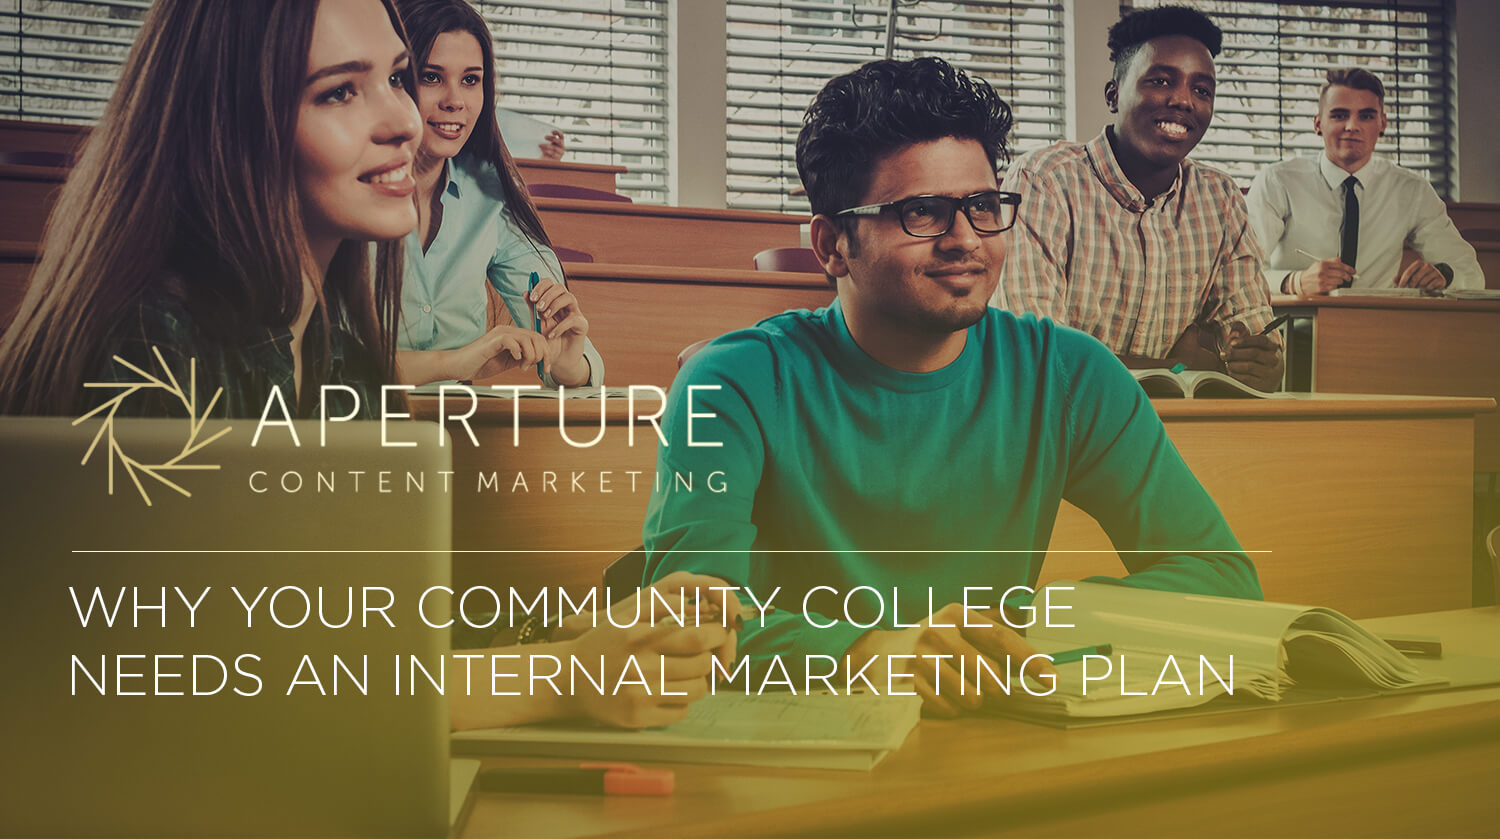 Why Your Community College Needs an Internal Marketing Plan